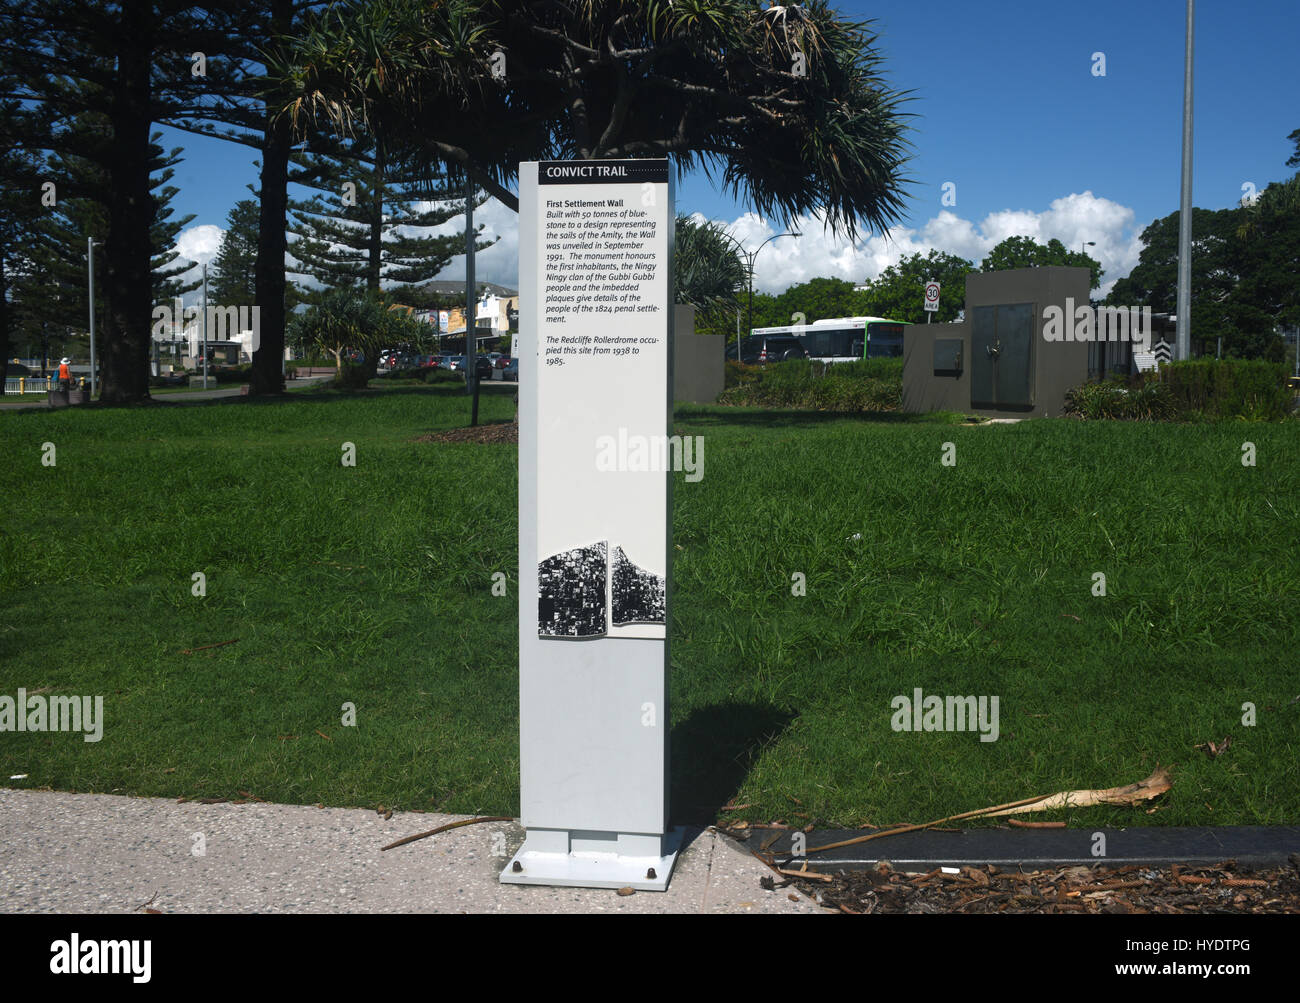 Redcliffe, Queensland, Australia: Sign on Convict Trail commemorating the arrival of British convicts in 1824 - Stock Image